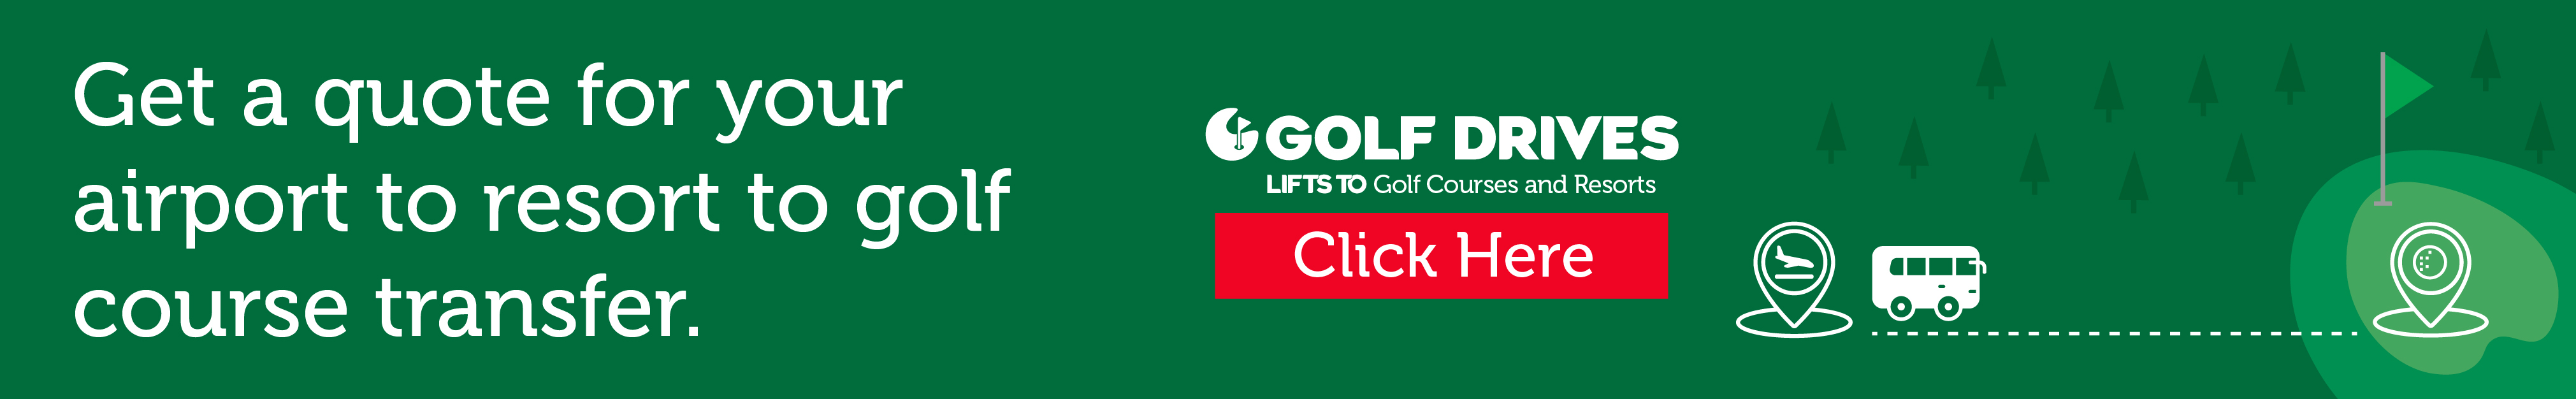 Get a quote for your airport to resort to golf course transfer